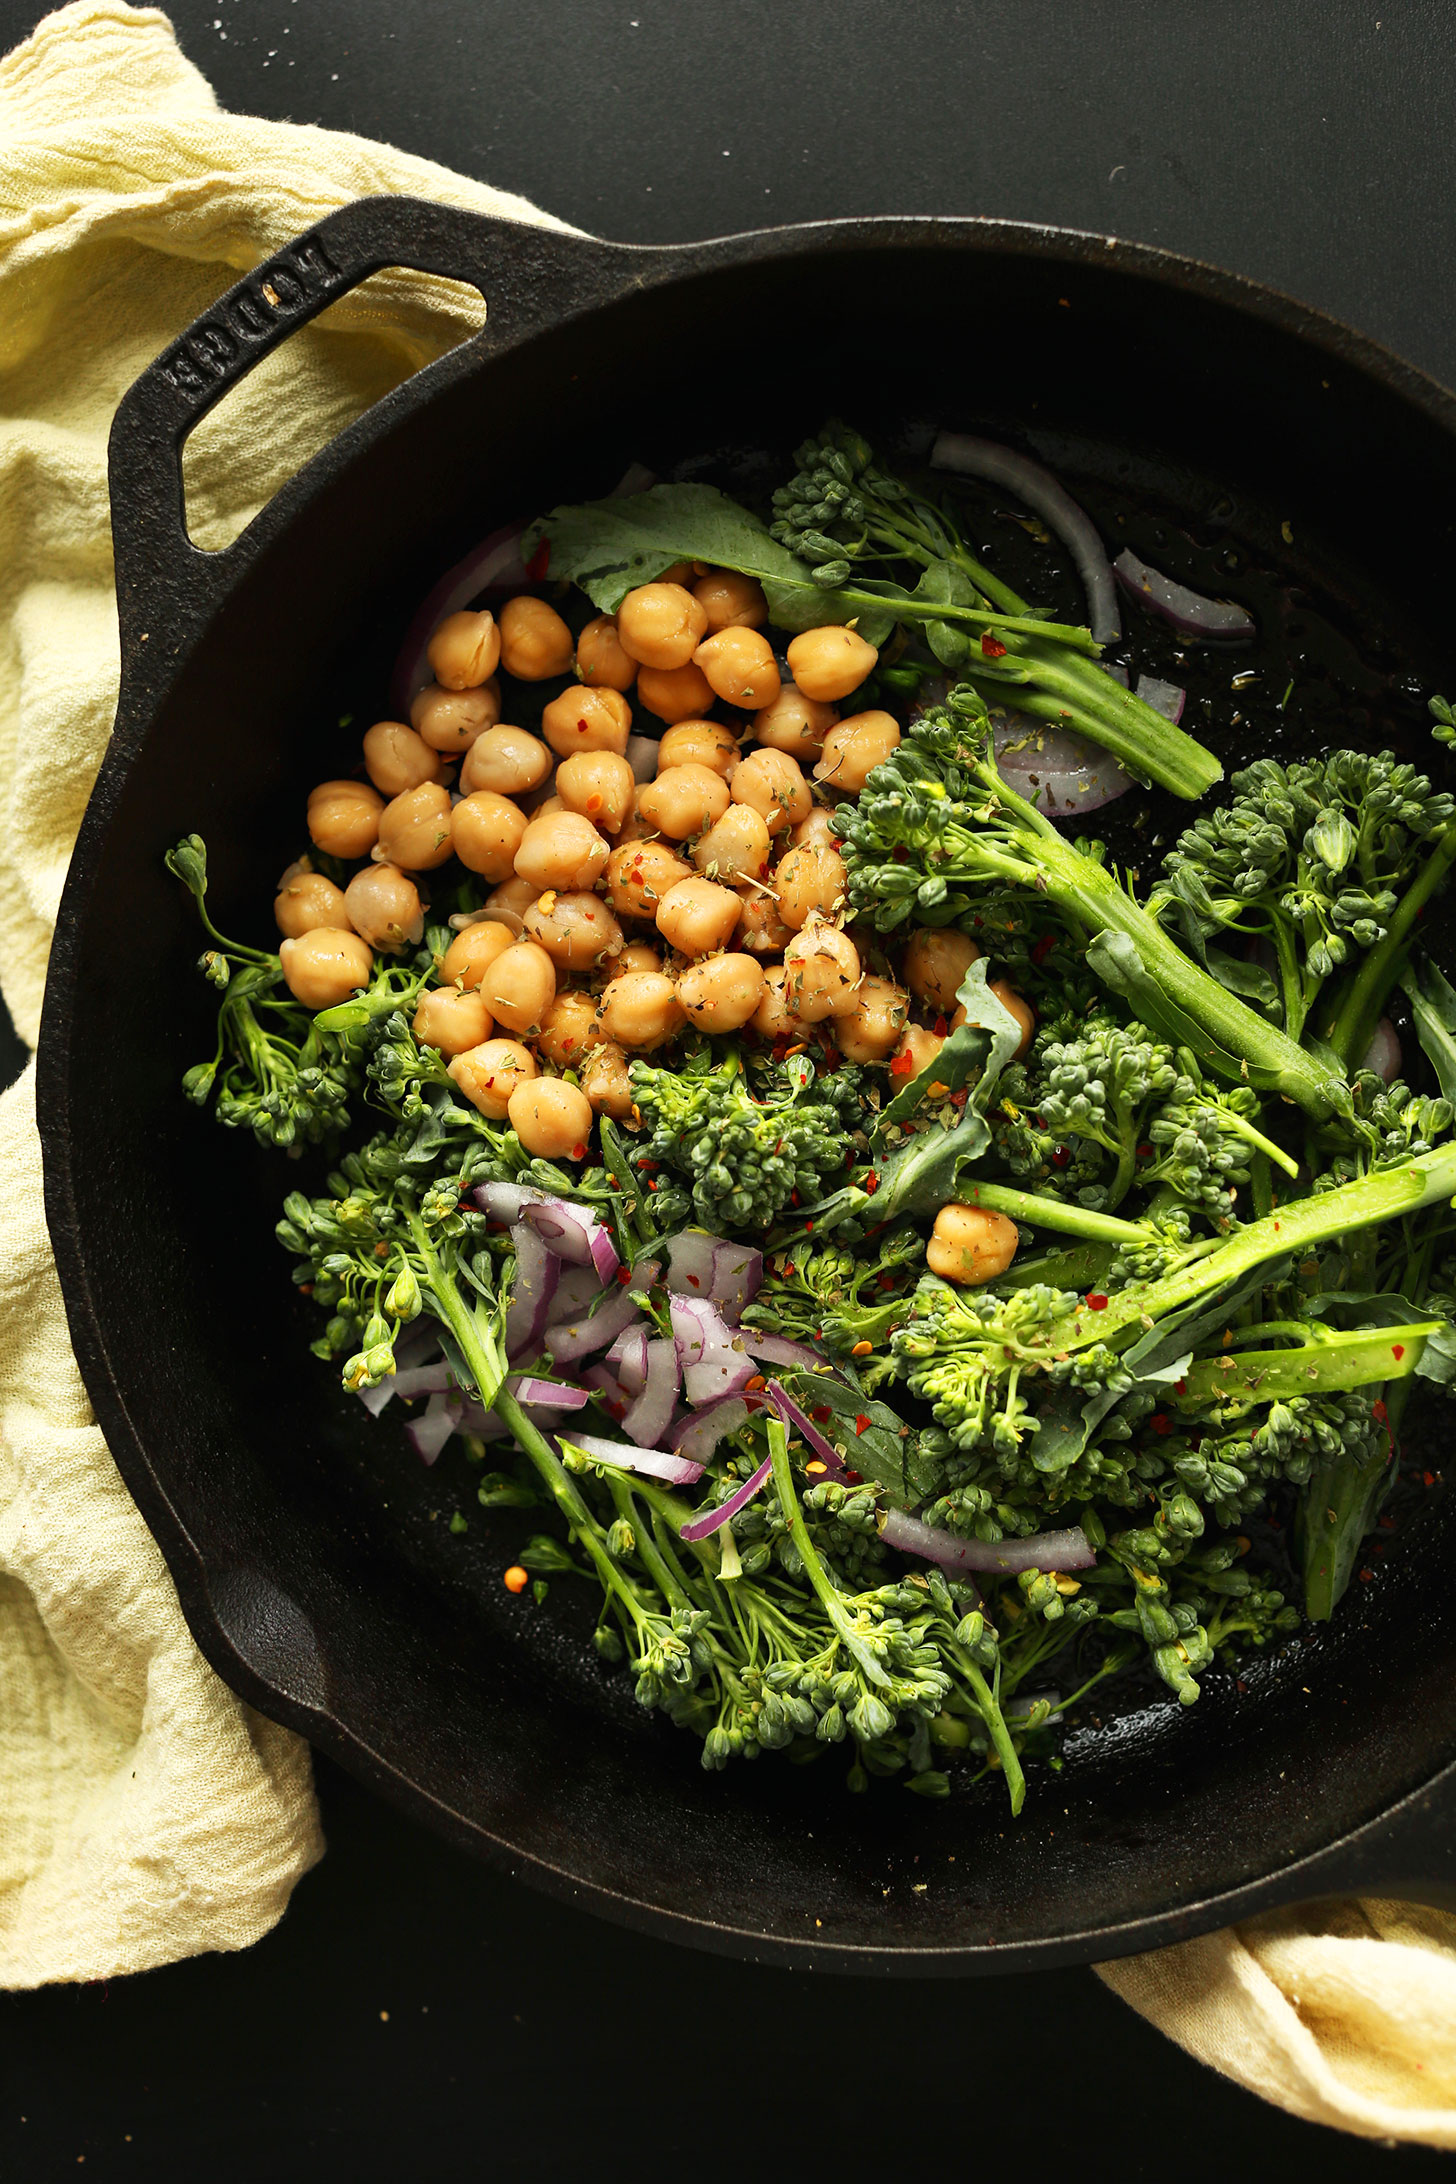 Roasting vegetables and chickpeas in a cast-iron skillet for making healthy vegan pizza